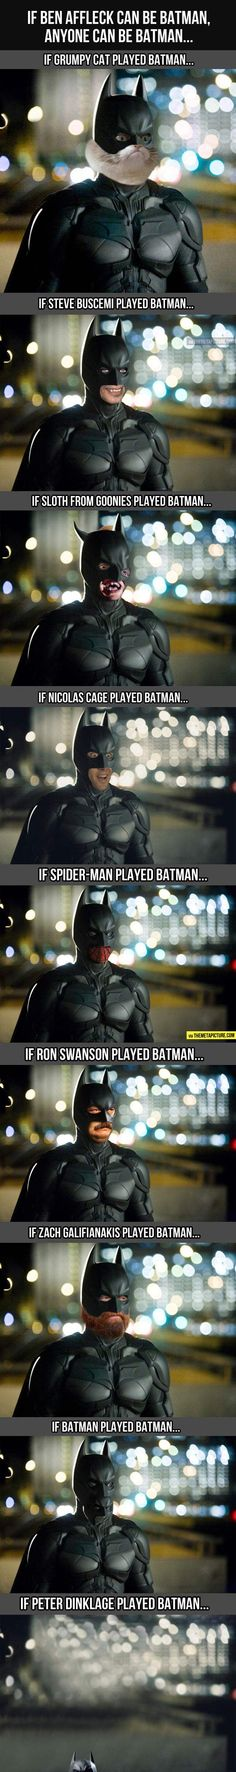 Lol Batman